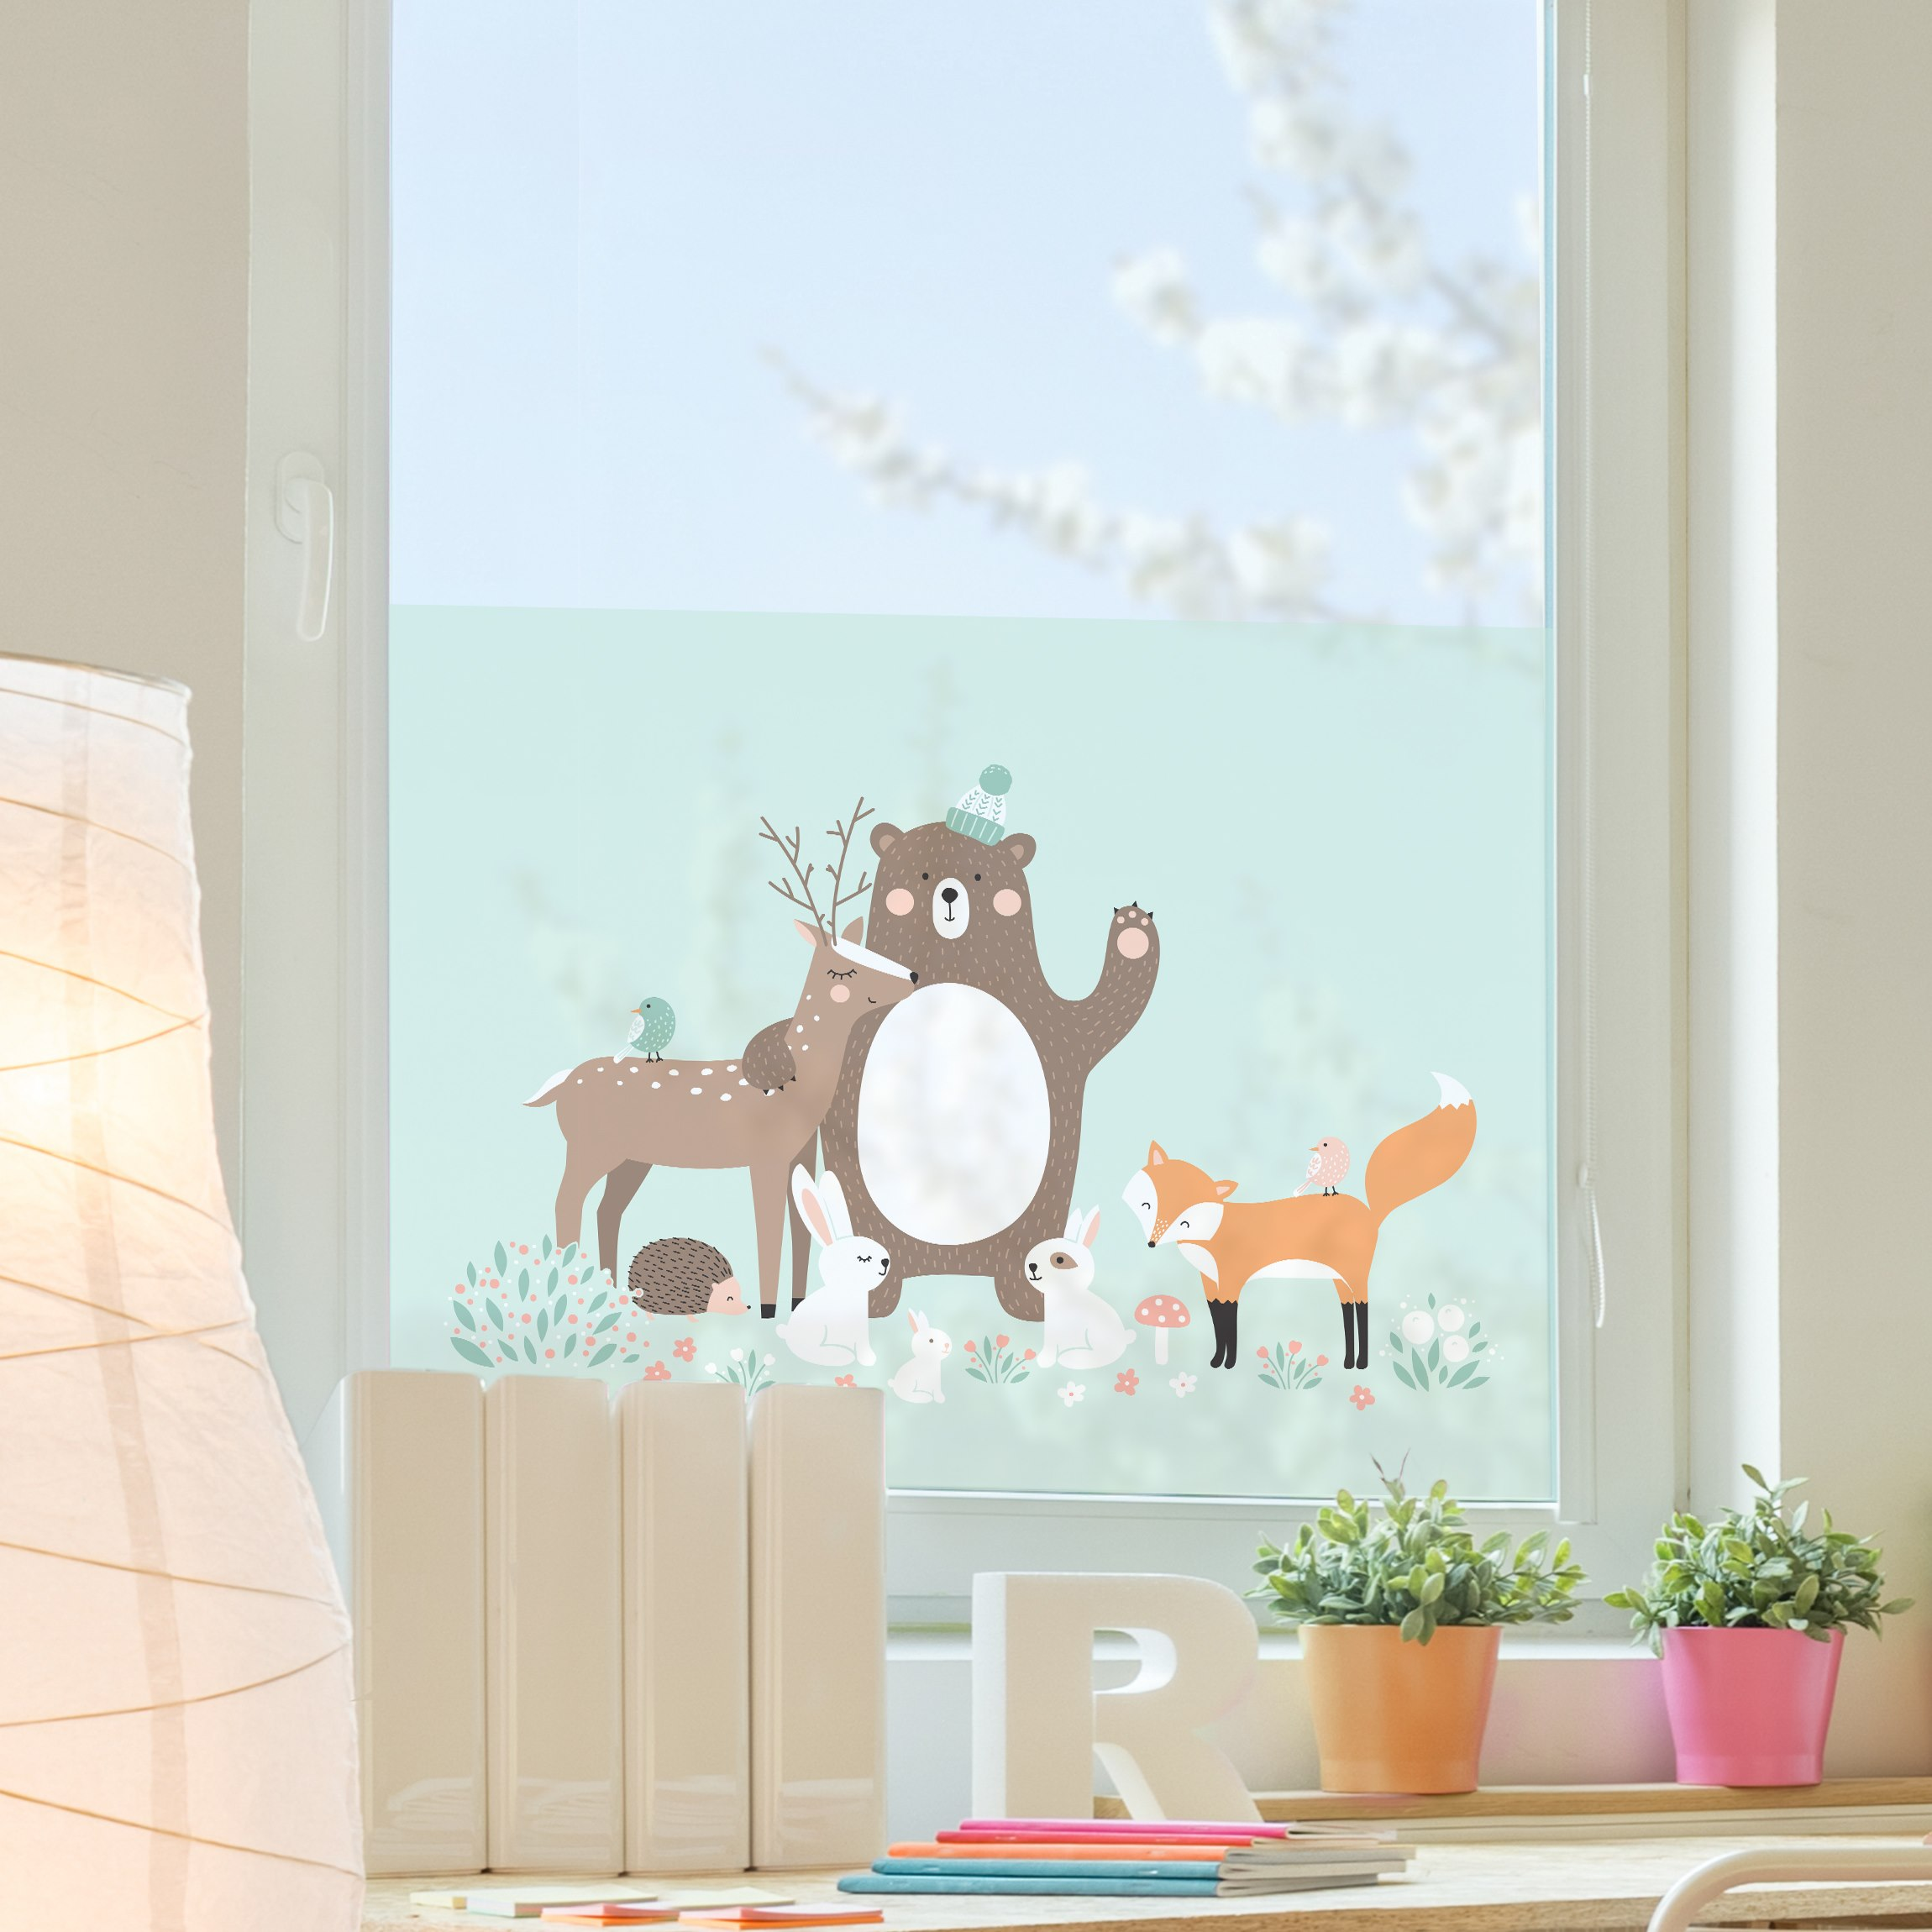 fensterfolie sichtschutz fenster forest friends mit waldtieren blau blumen fensterbilder. Black Bedroom Furniture Sets. Home Design Ideas